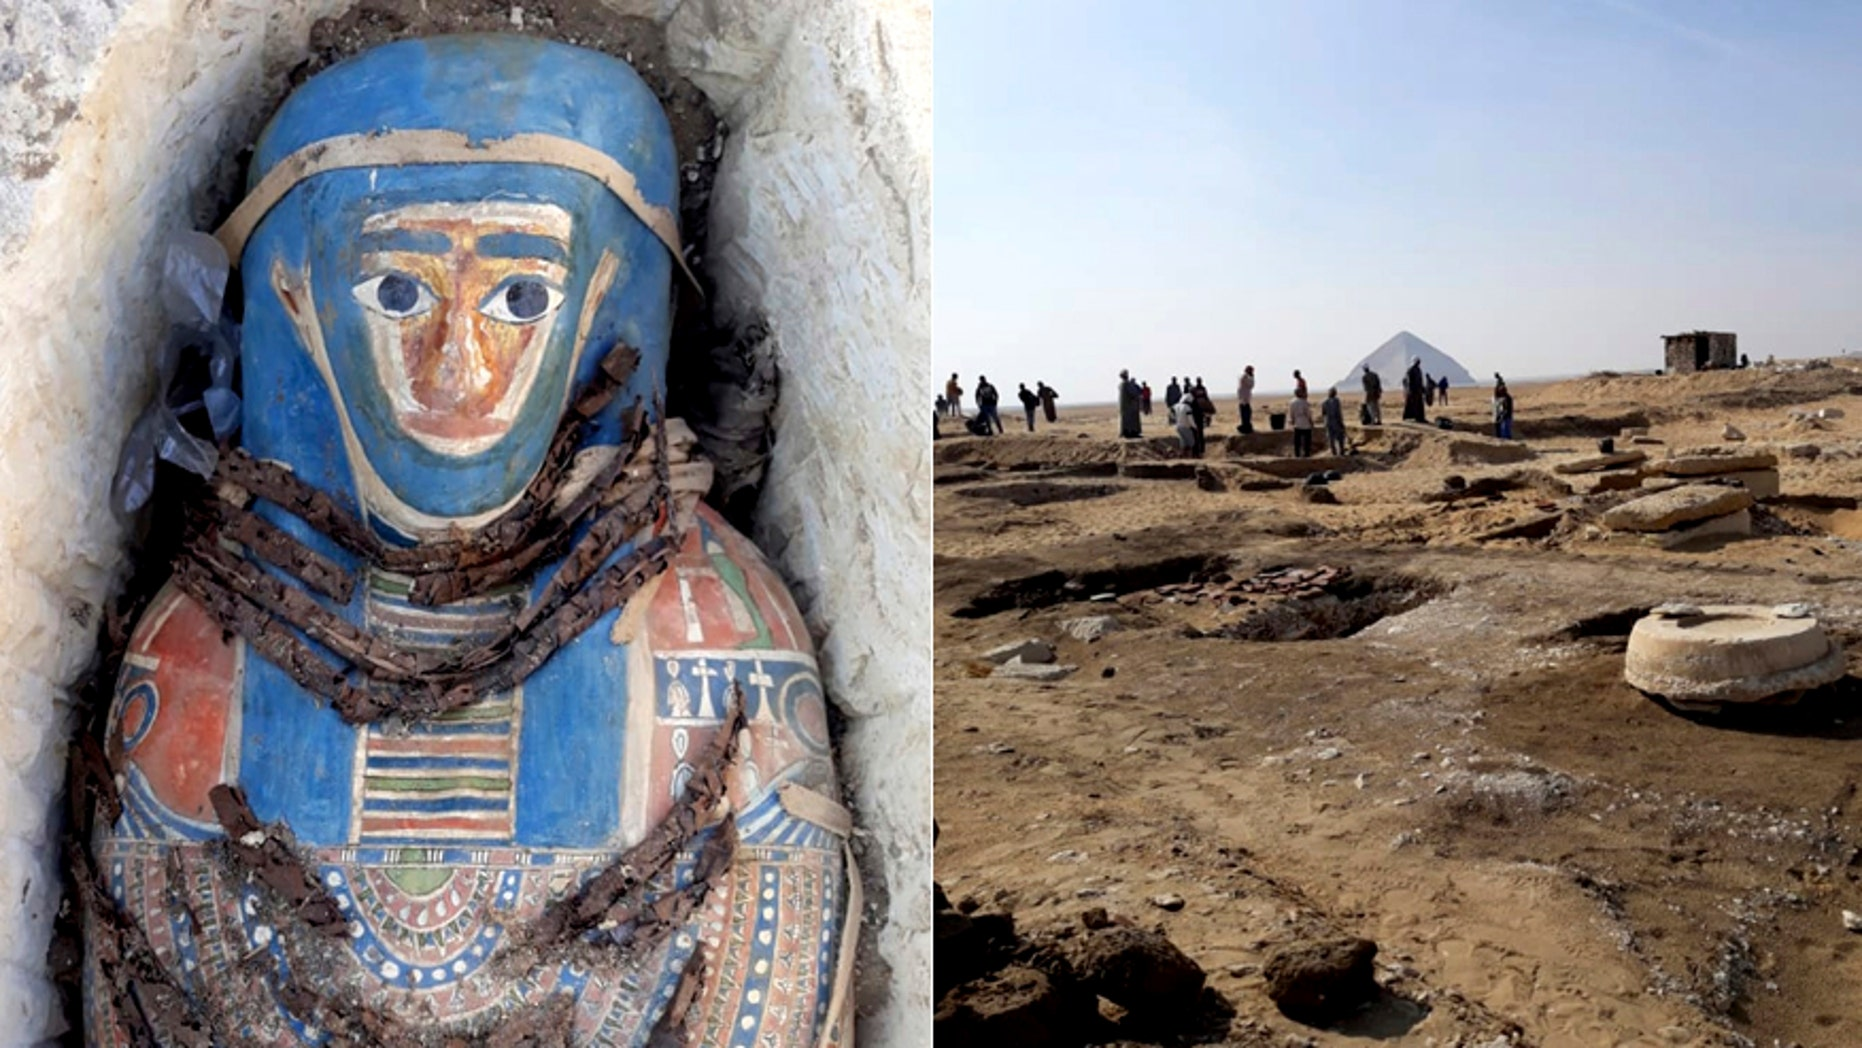 One of the painted mummies and the excavation site (Egyptian Ministry of Antiquities via AP)